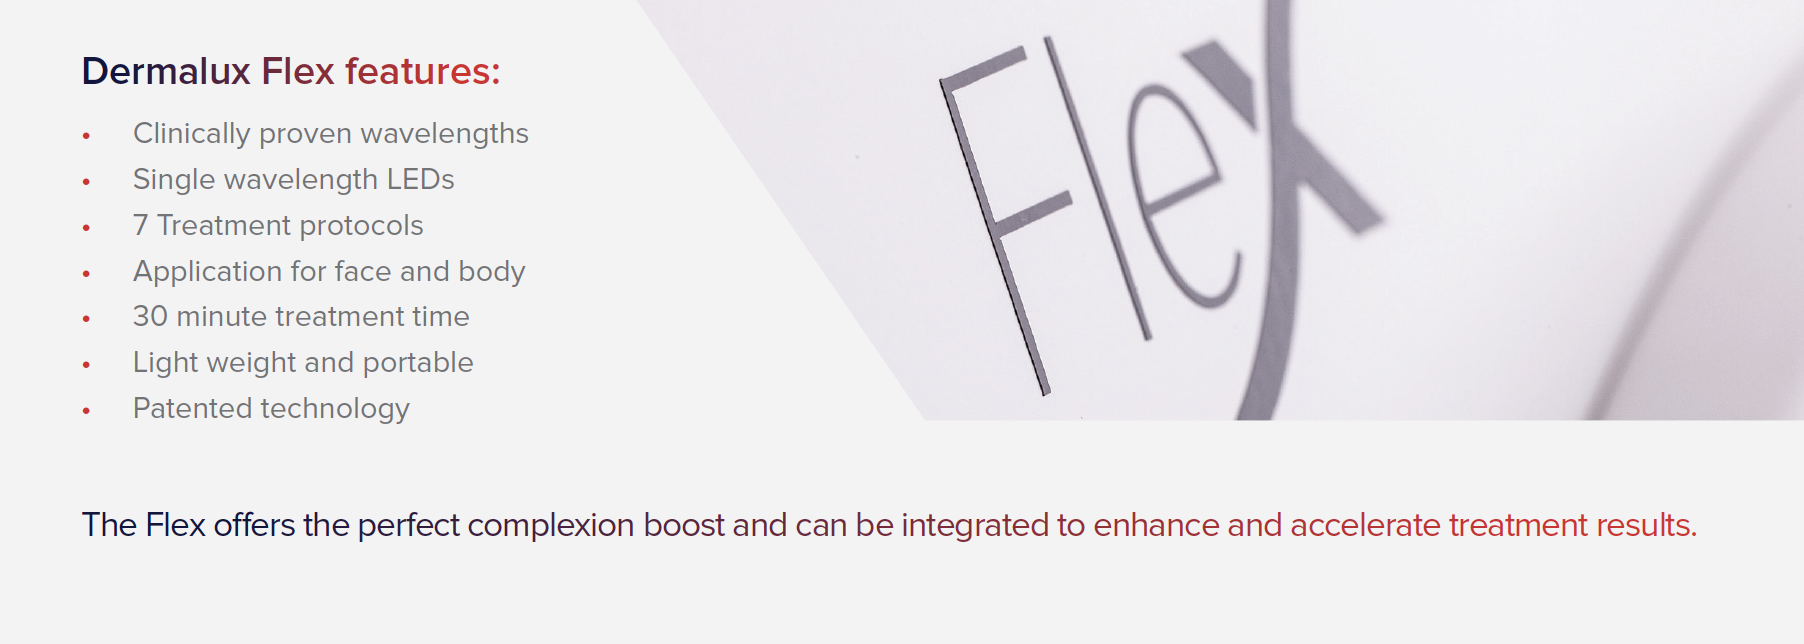 Screen Shot 2019-05-22 at 9.59.00 am.pngThe Flex offers the perfect complexion boost and can be integrated to enhance and accelerate treatment results.